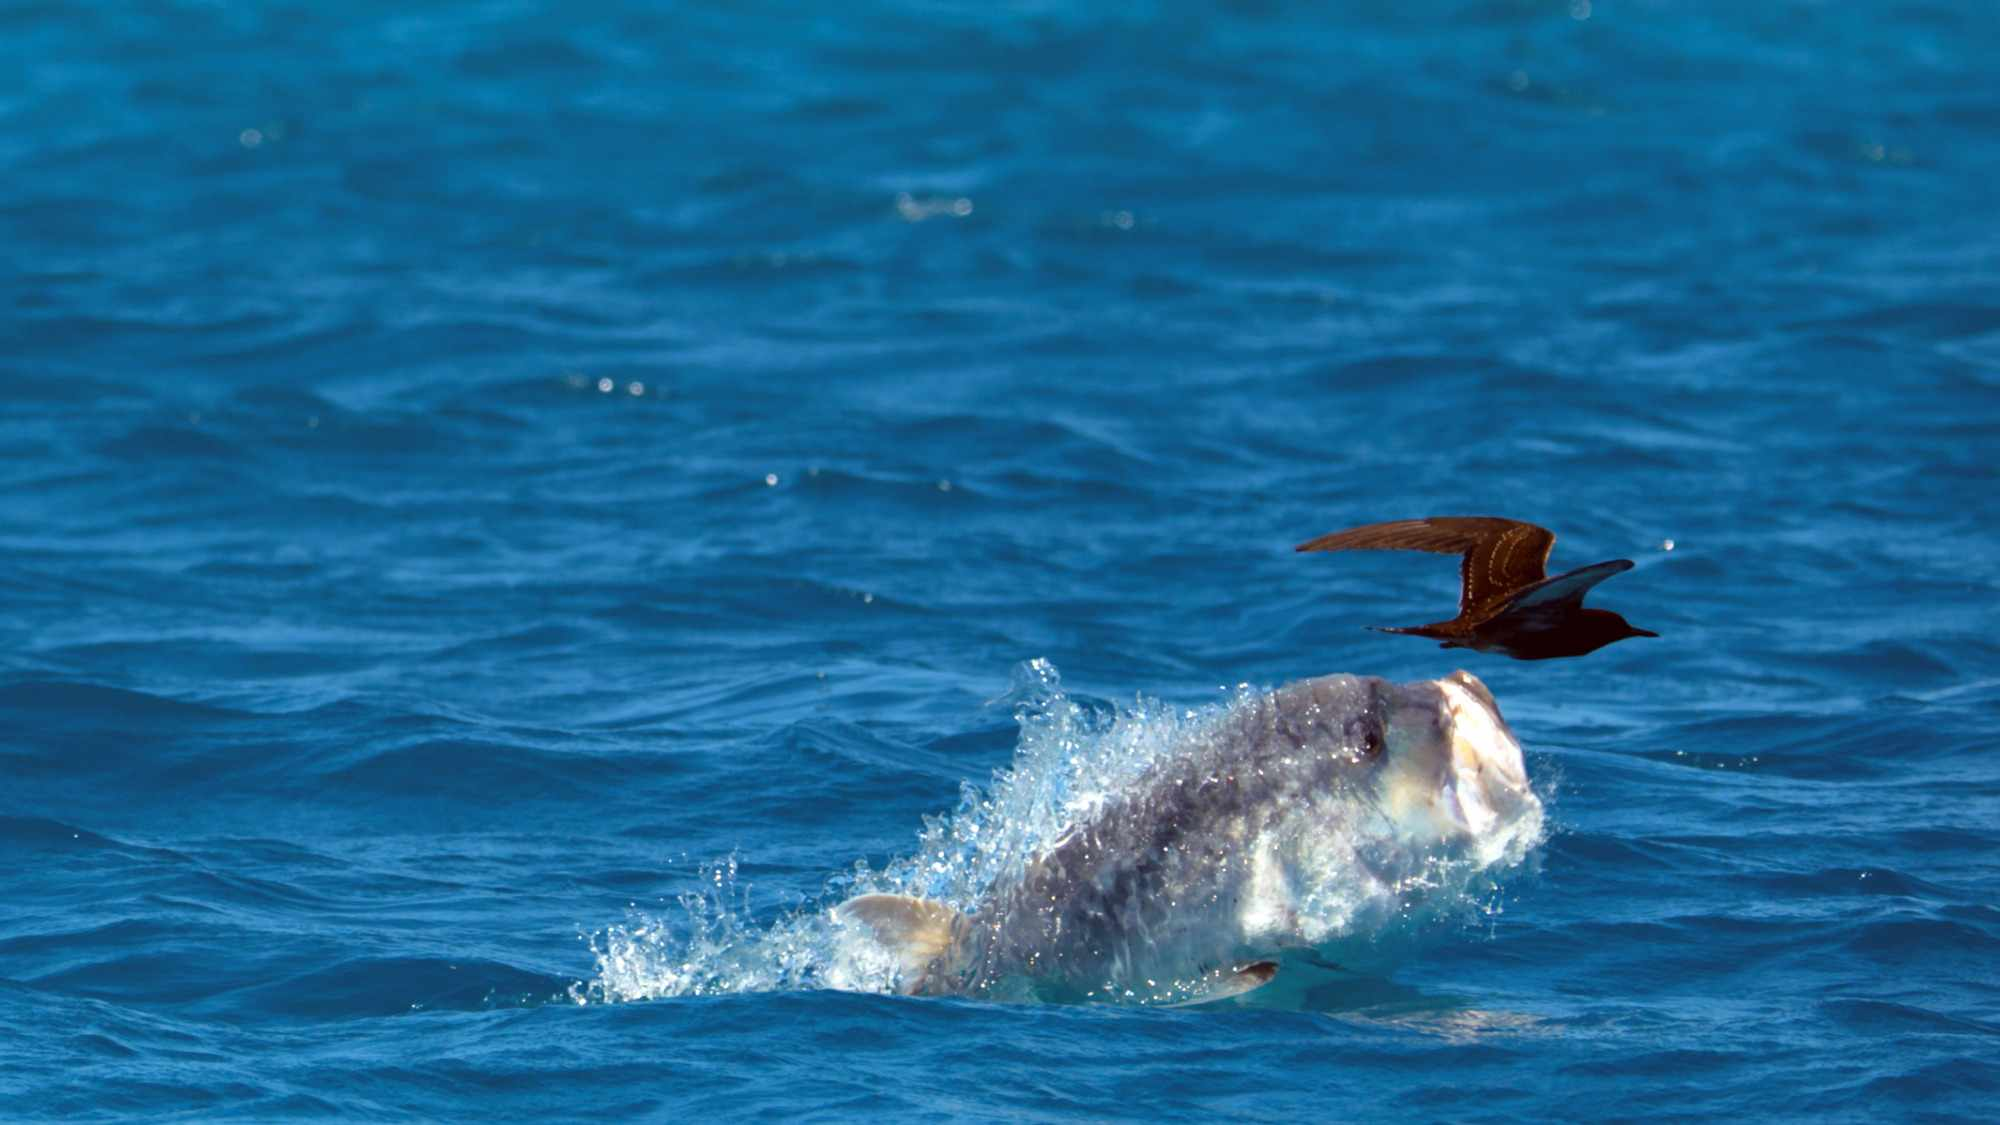 Giant Trevally fish leaps out of the water to catch sooty tern birds as they fly overhead (BBC NHU, JG)